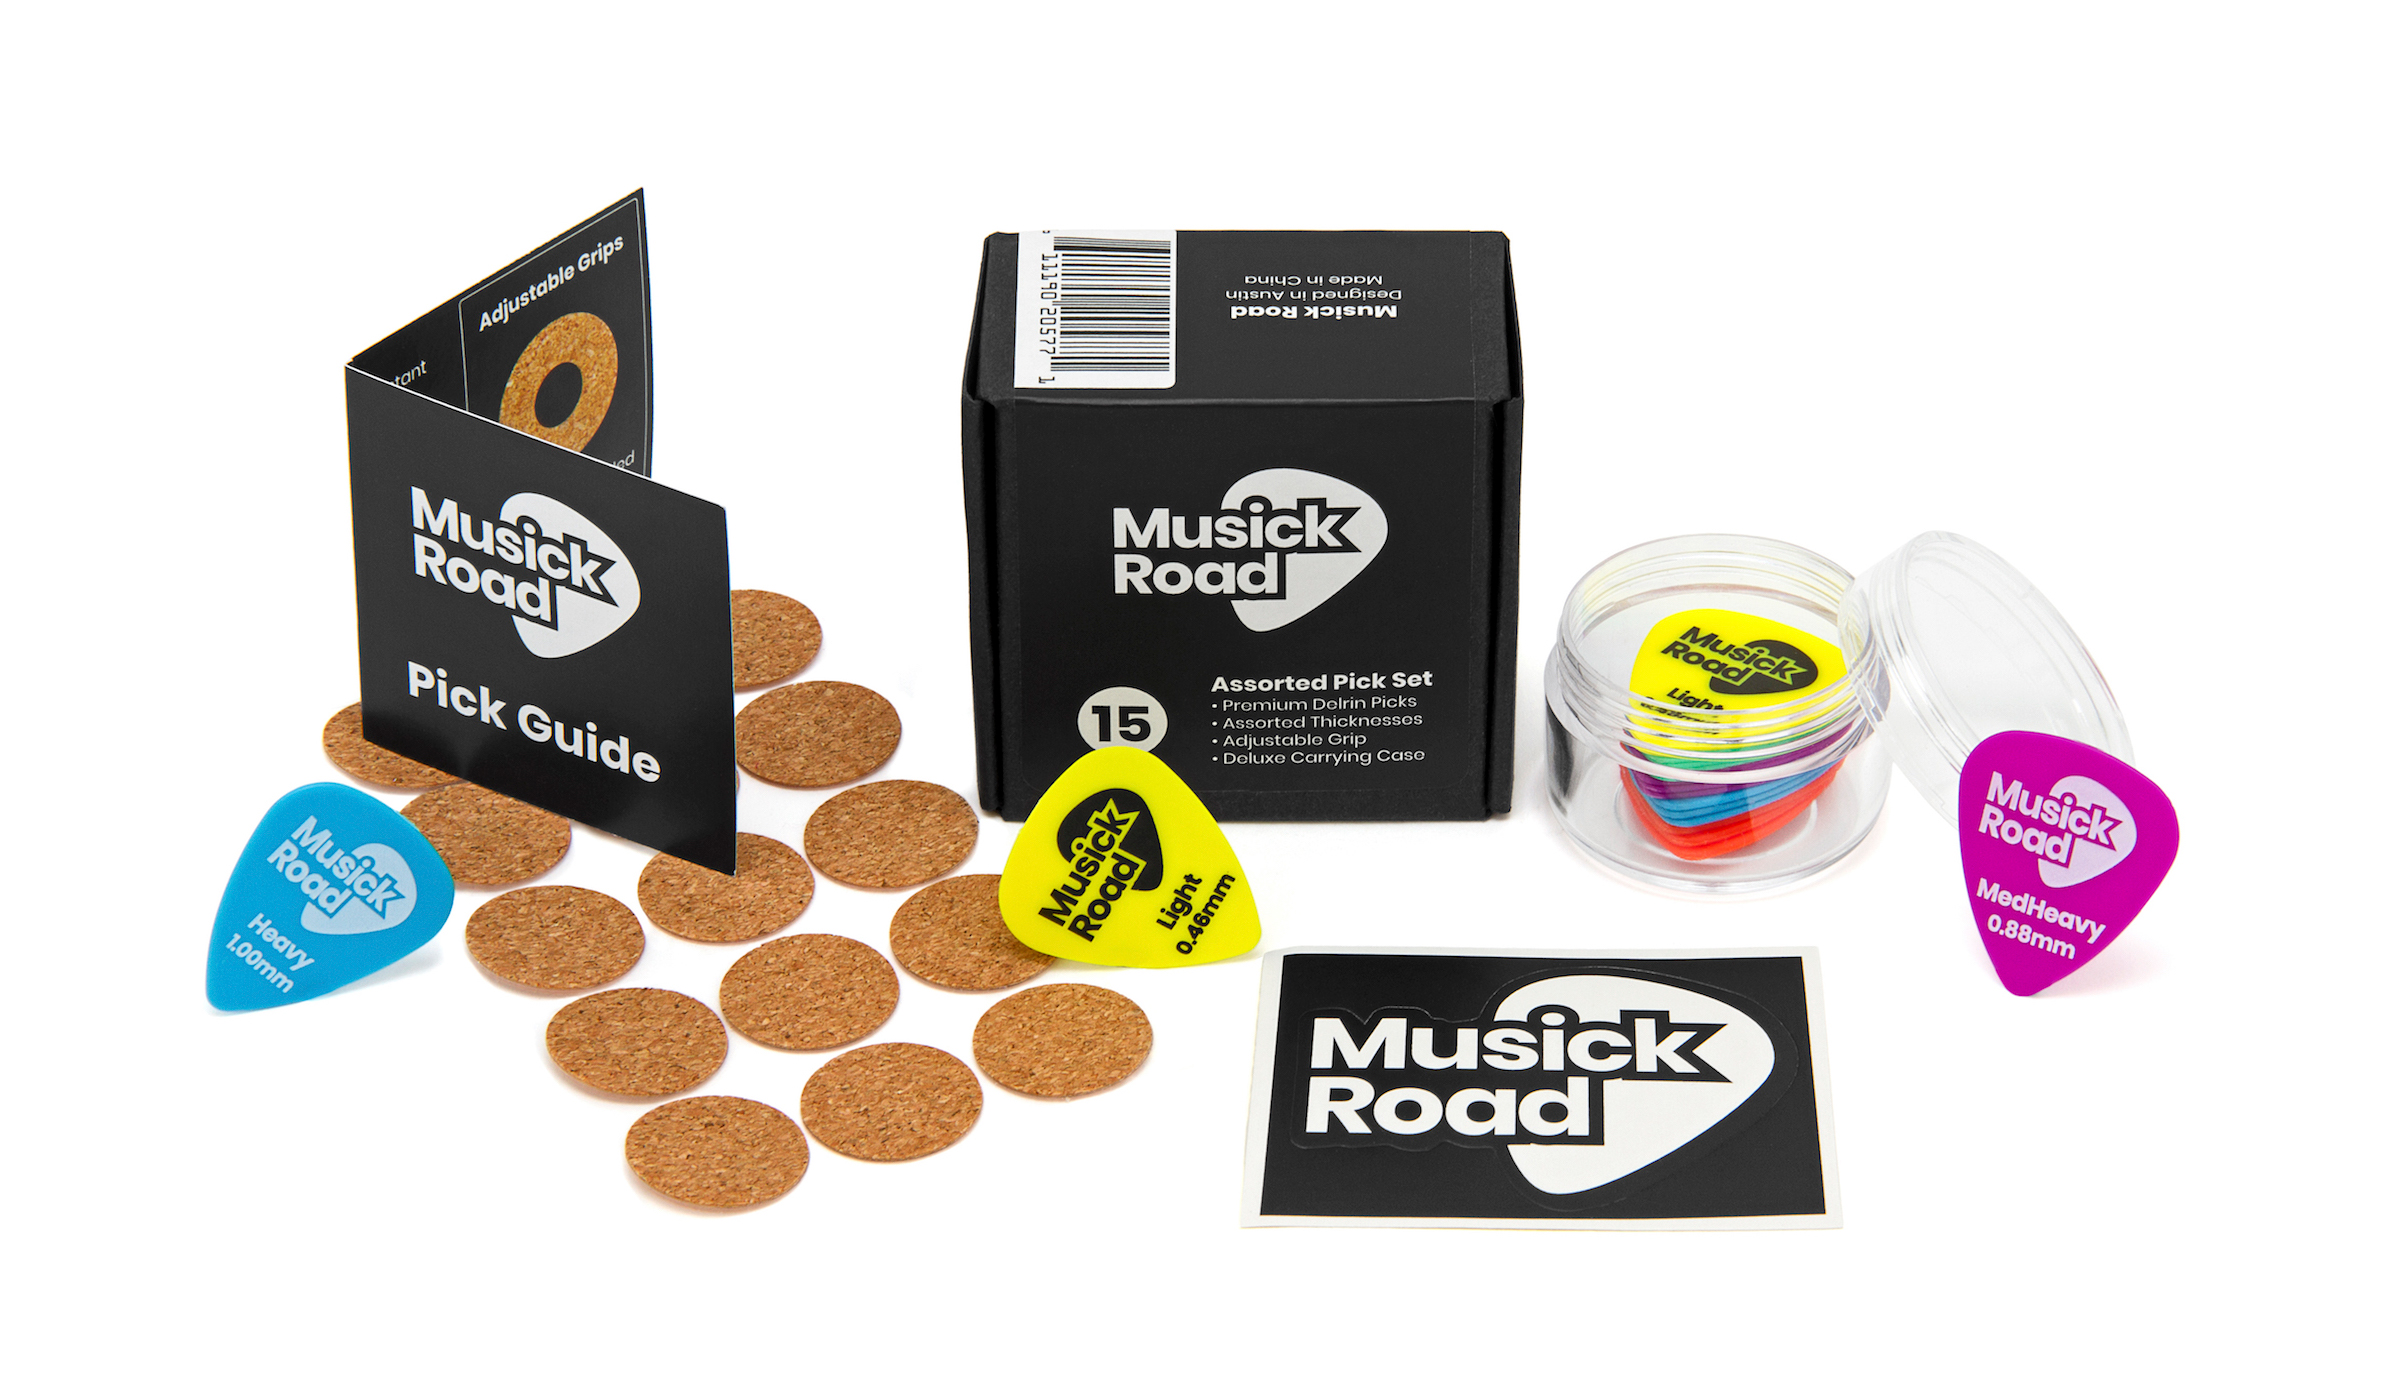 Musick Road Product Development and Branding